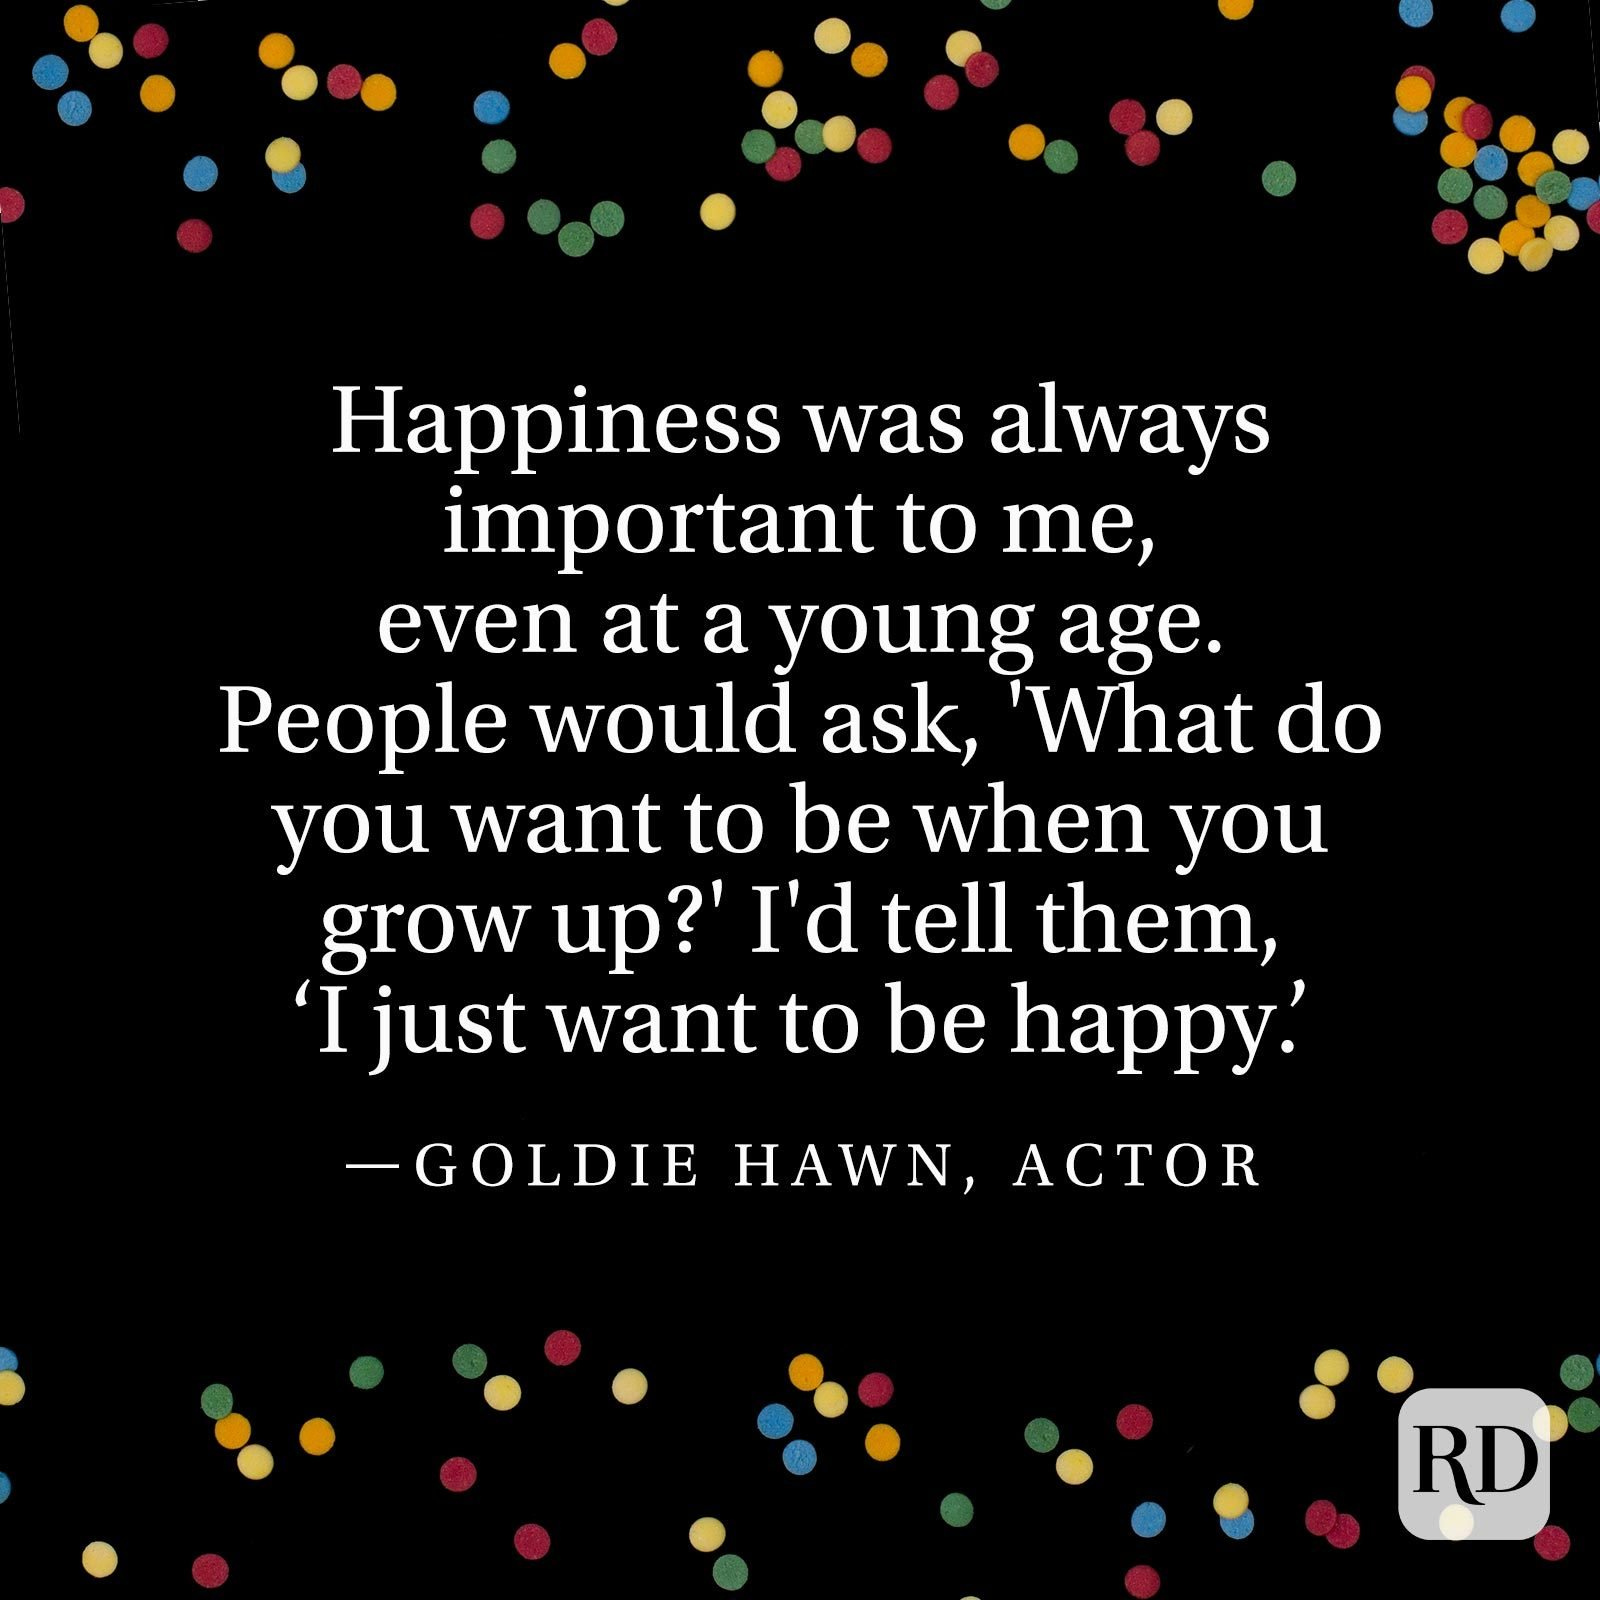 """Happiness was always important to me, even at a young age. People would ask, 'What do you want to be when you grow up?' I'd tell them, 'I just want to be happy.'"" —Goldie Hawn, actor"